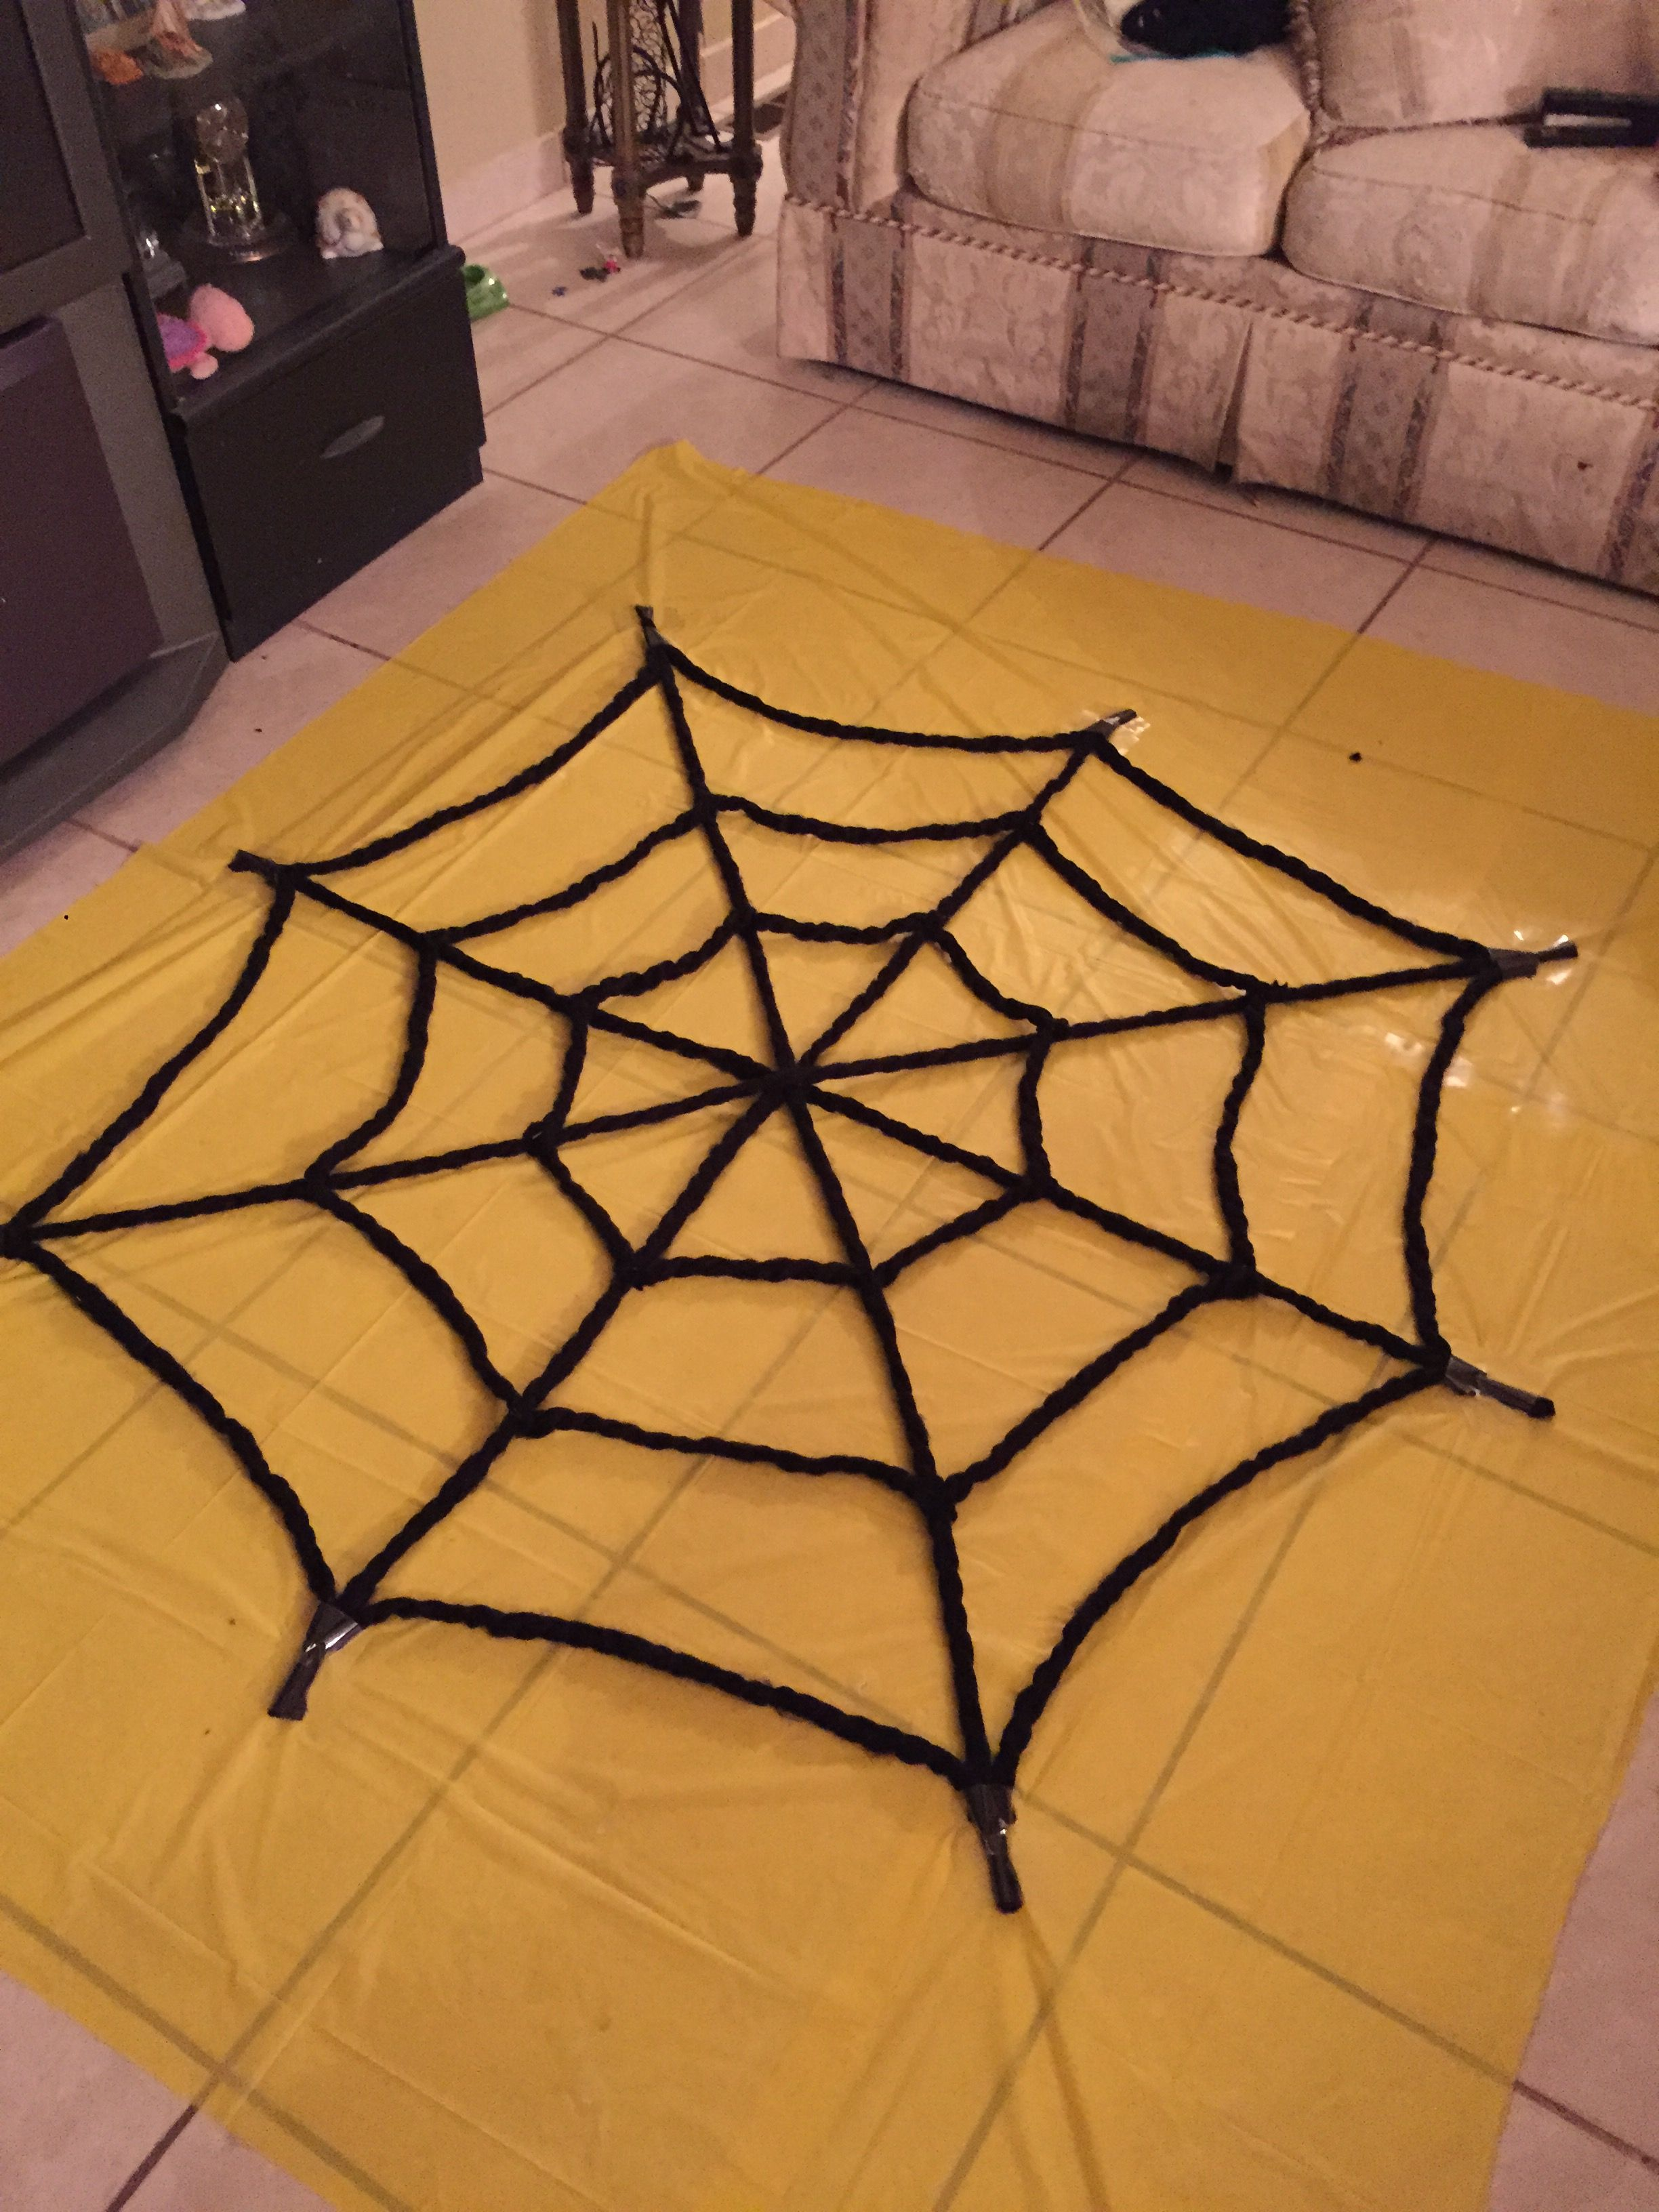 Spider Man Theme Party Spider Web Backdrop Made Out Of Plastic